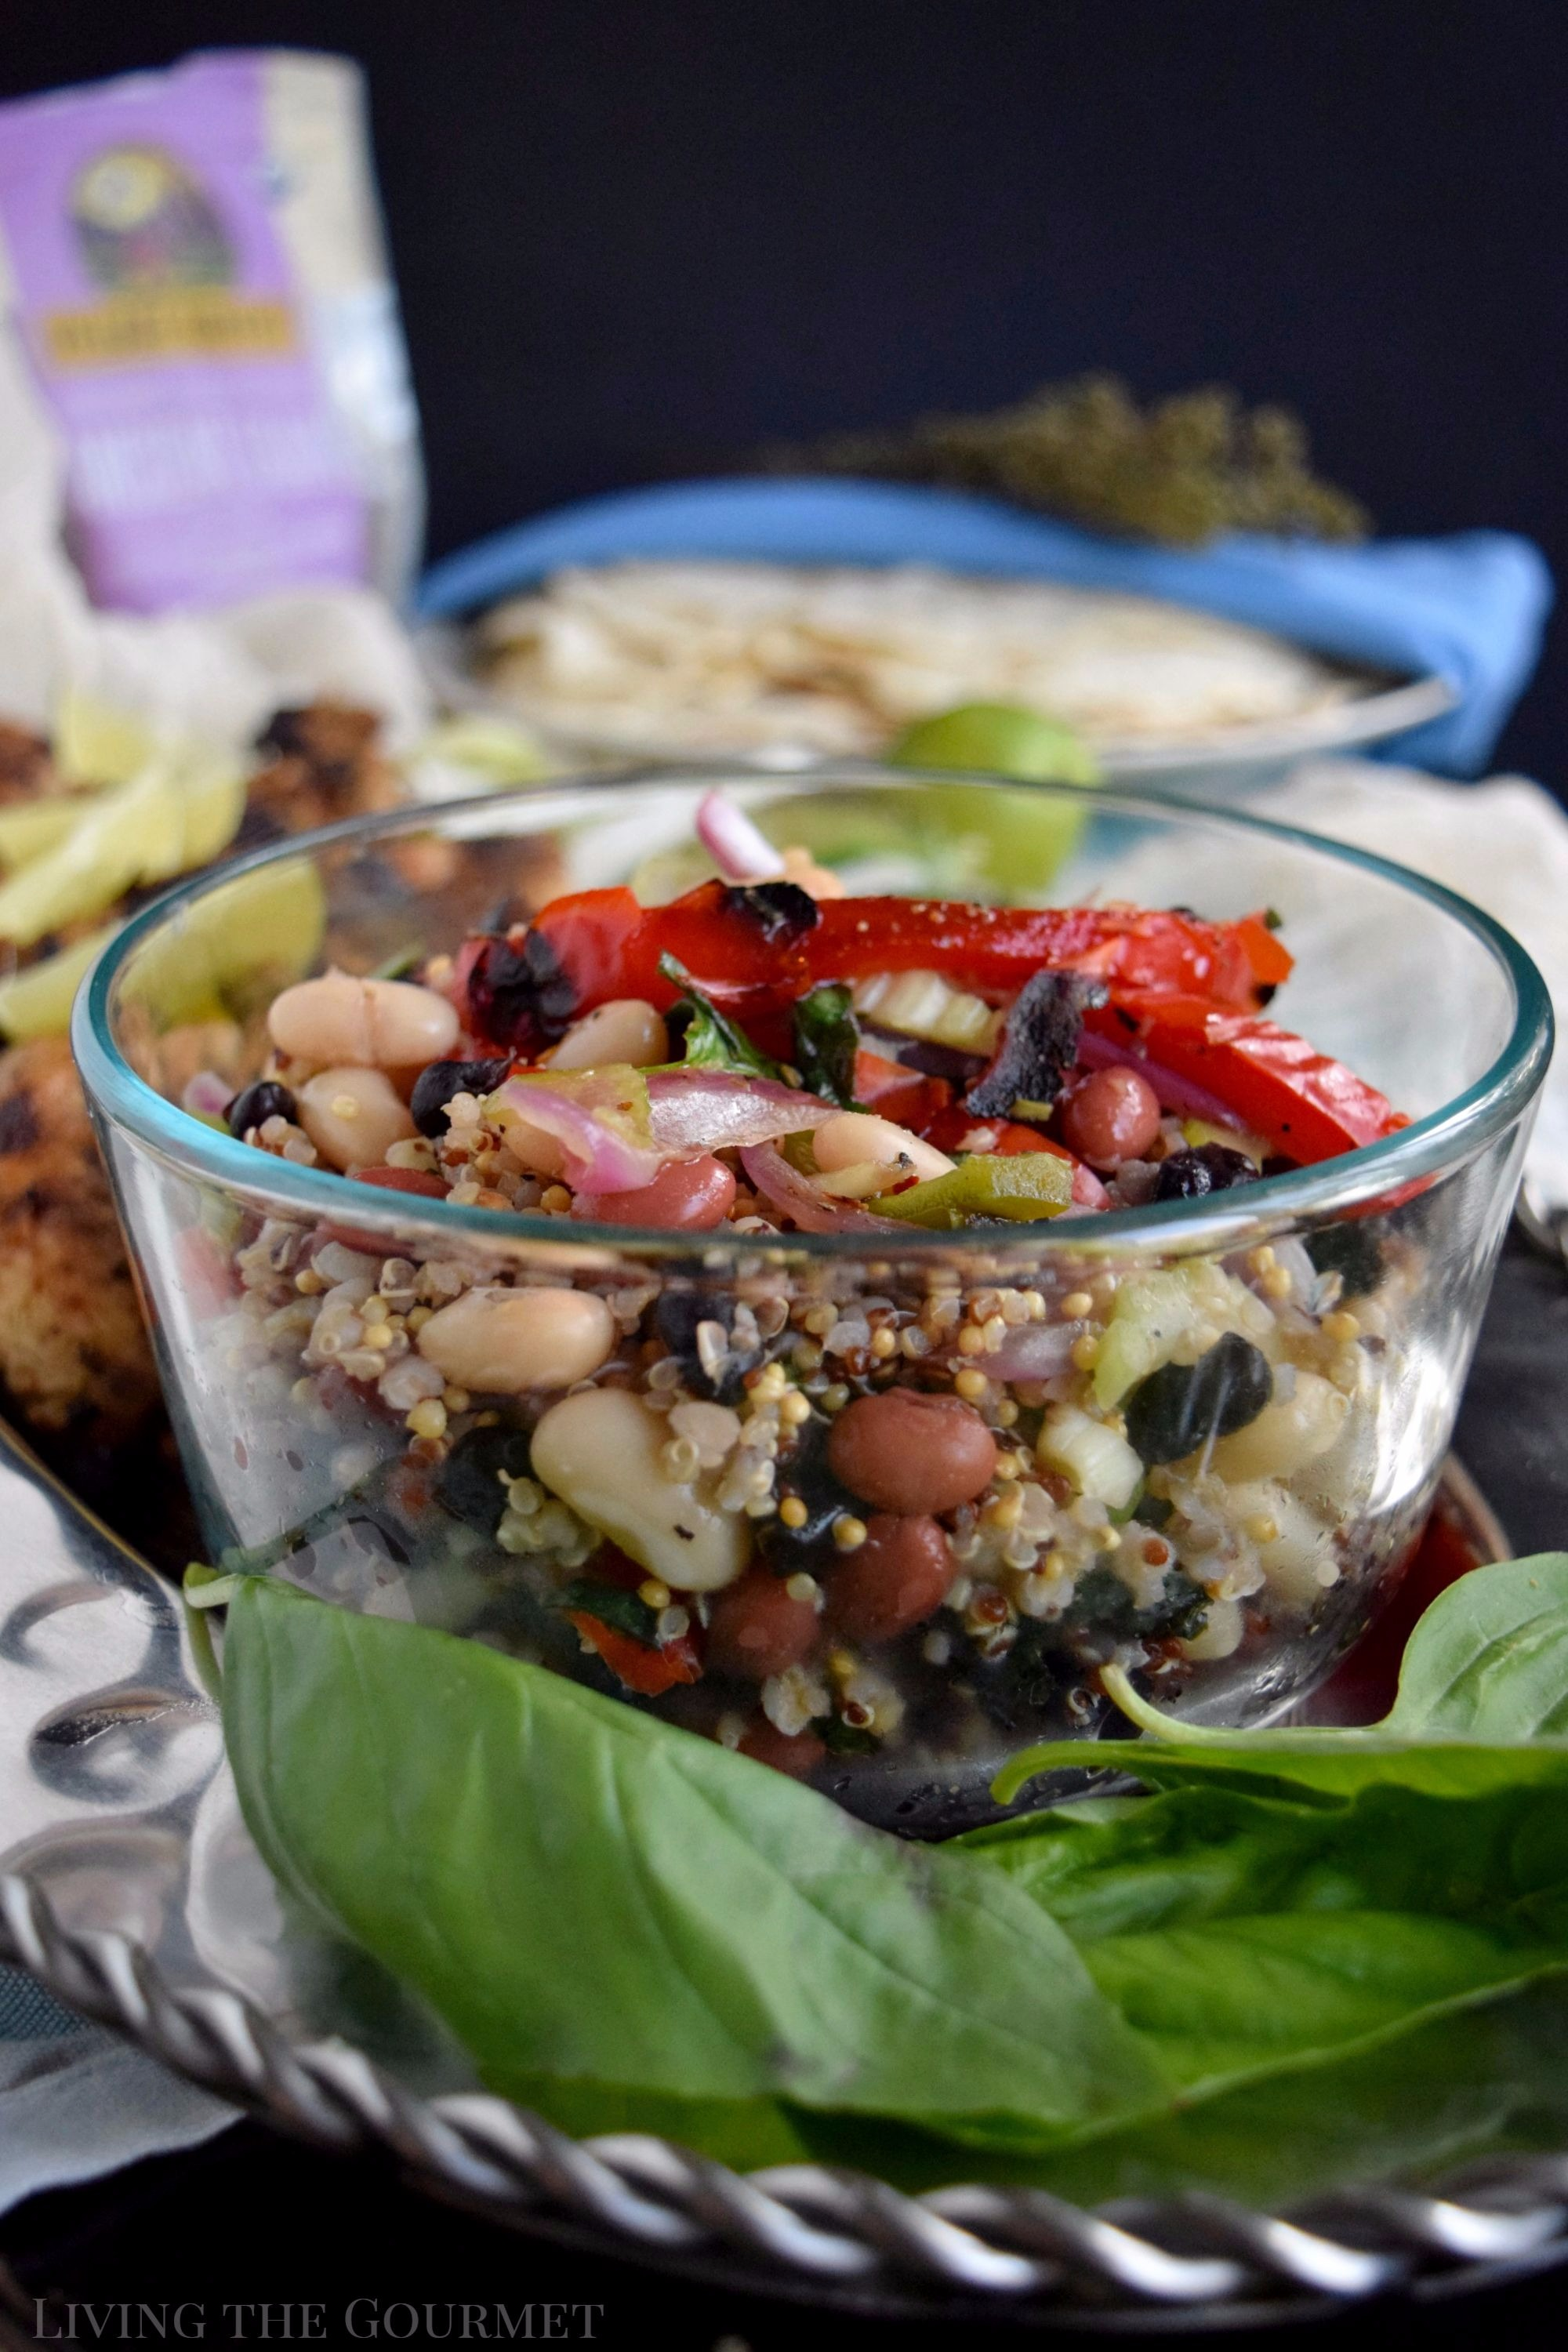 Living the Gourmet: Packed with protein, fiber, and nutrients, this Ancient Grains Three Bean Salad is served with Grilled Chicken for hearty, healthy summer meal. #vhblends #clvr